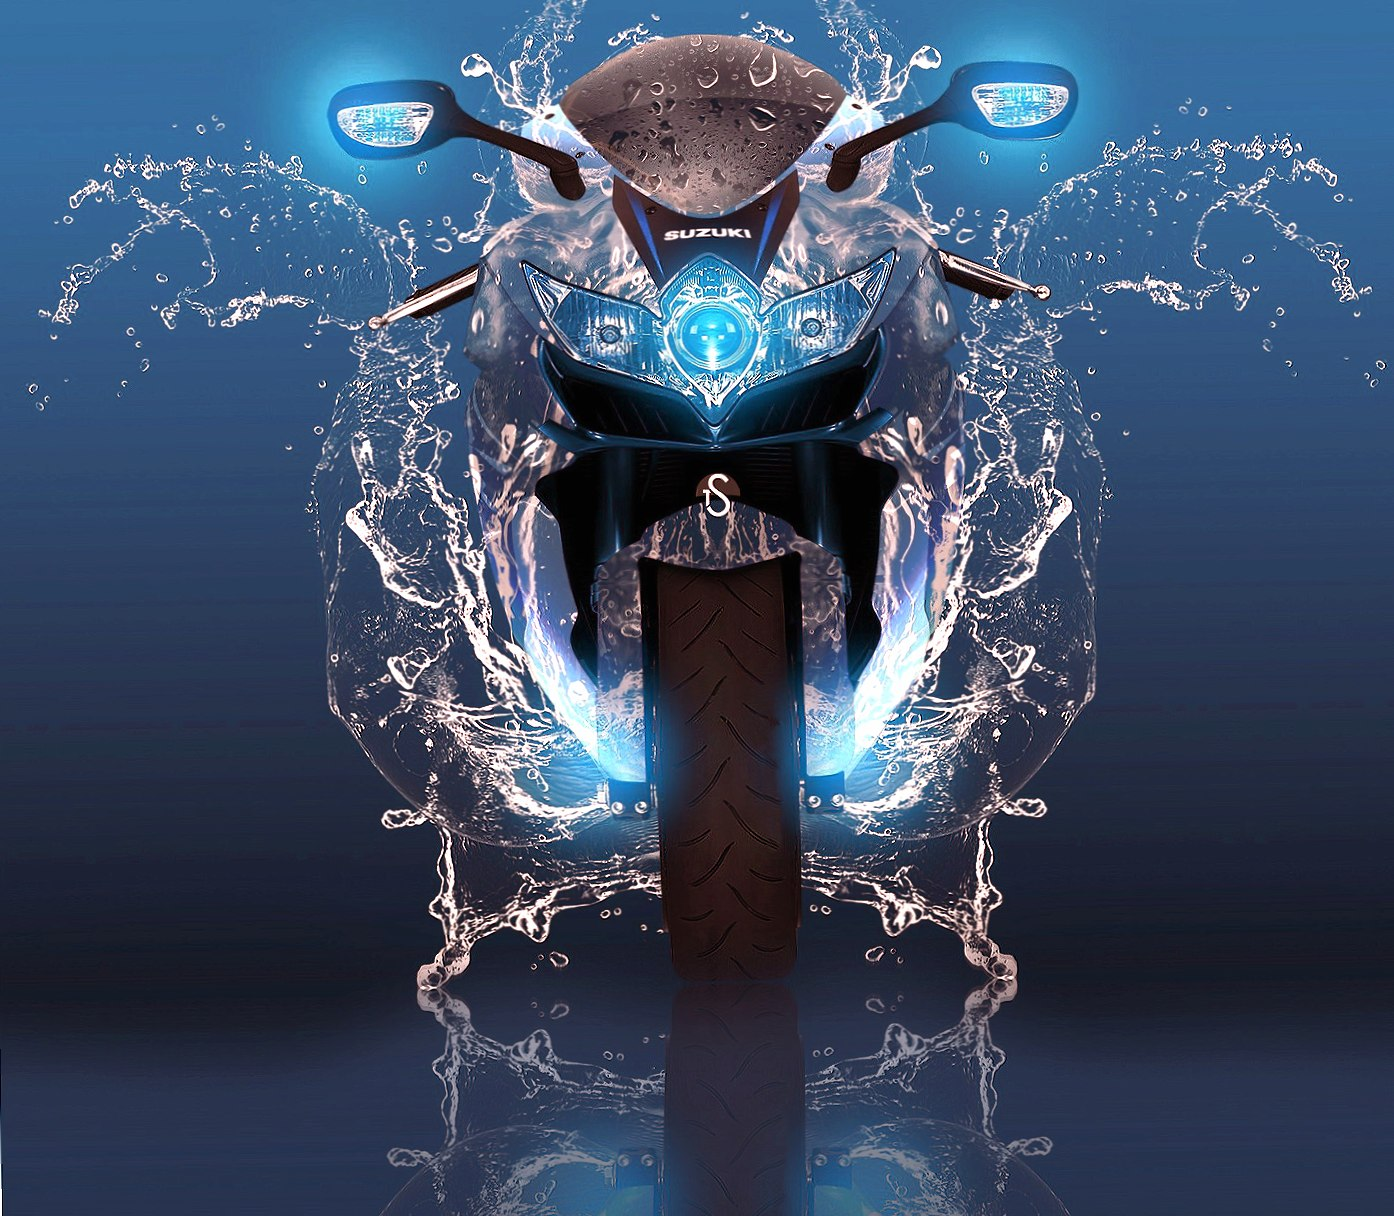 moto wallpapers HD quality